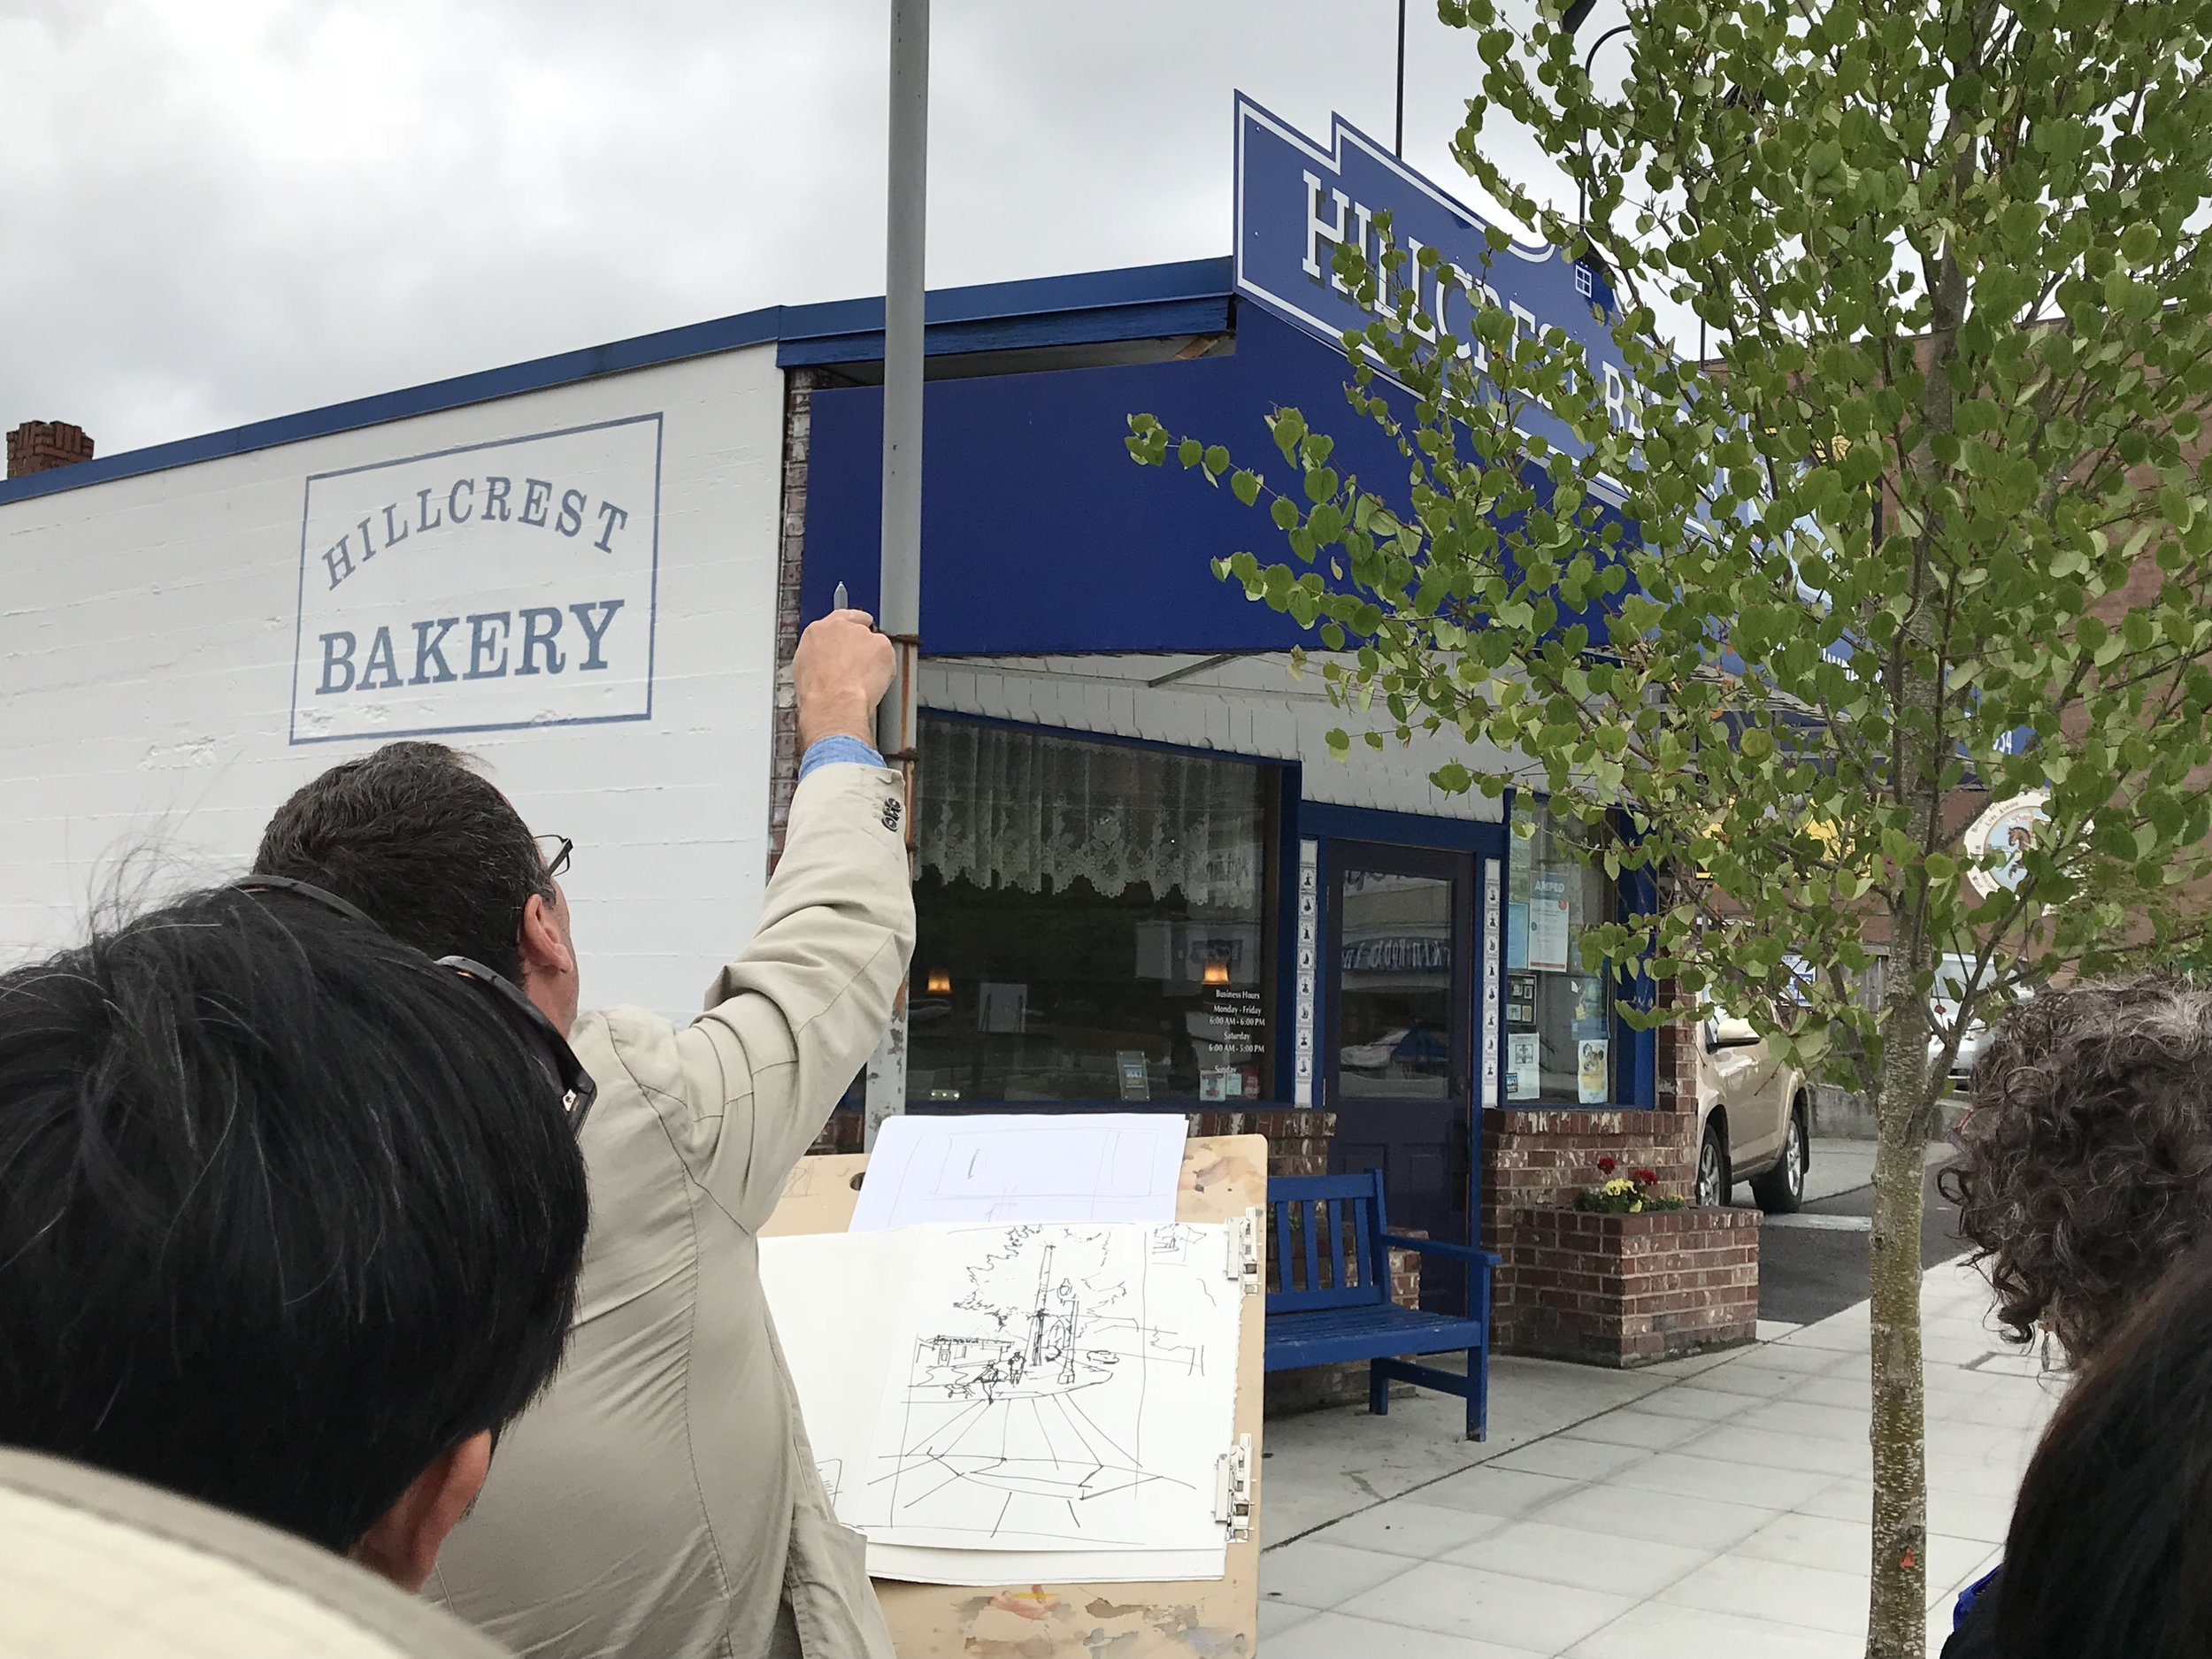 Hillcrest Bakery - Line Work and Composition Exercise